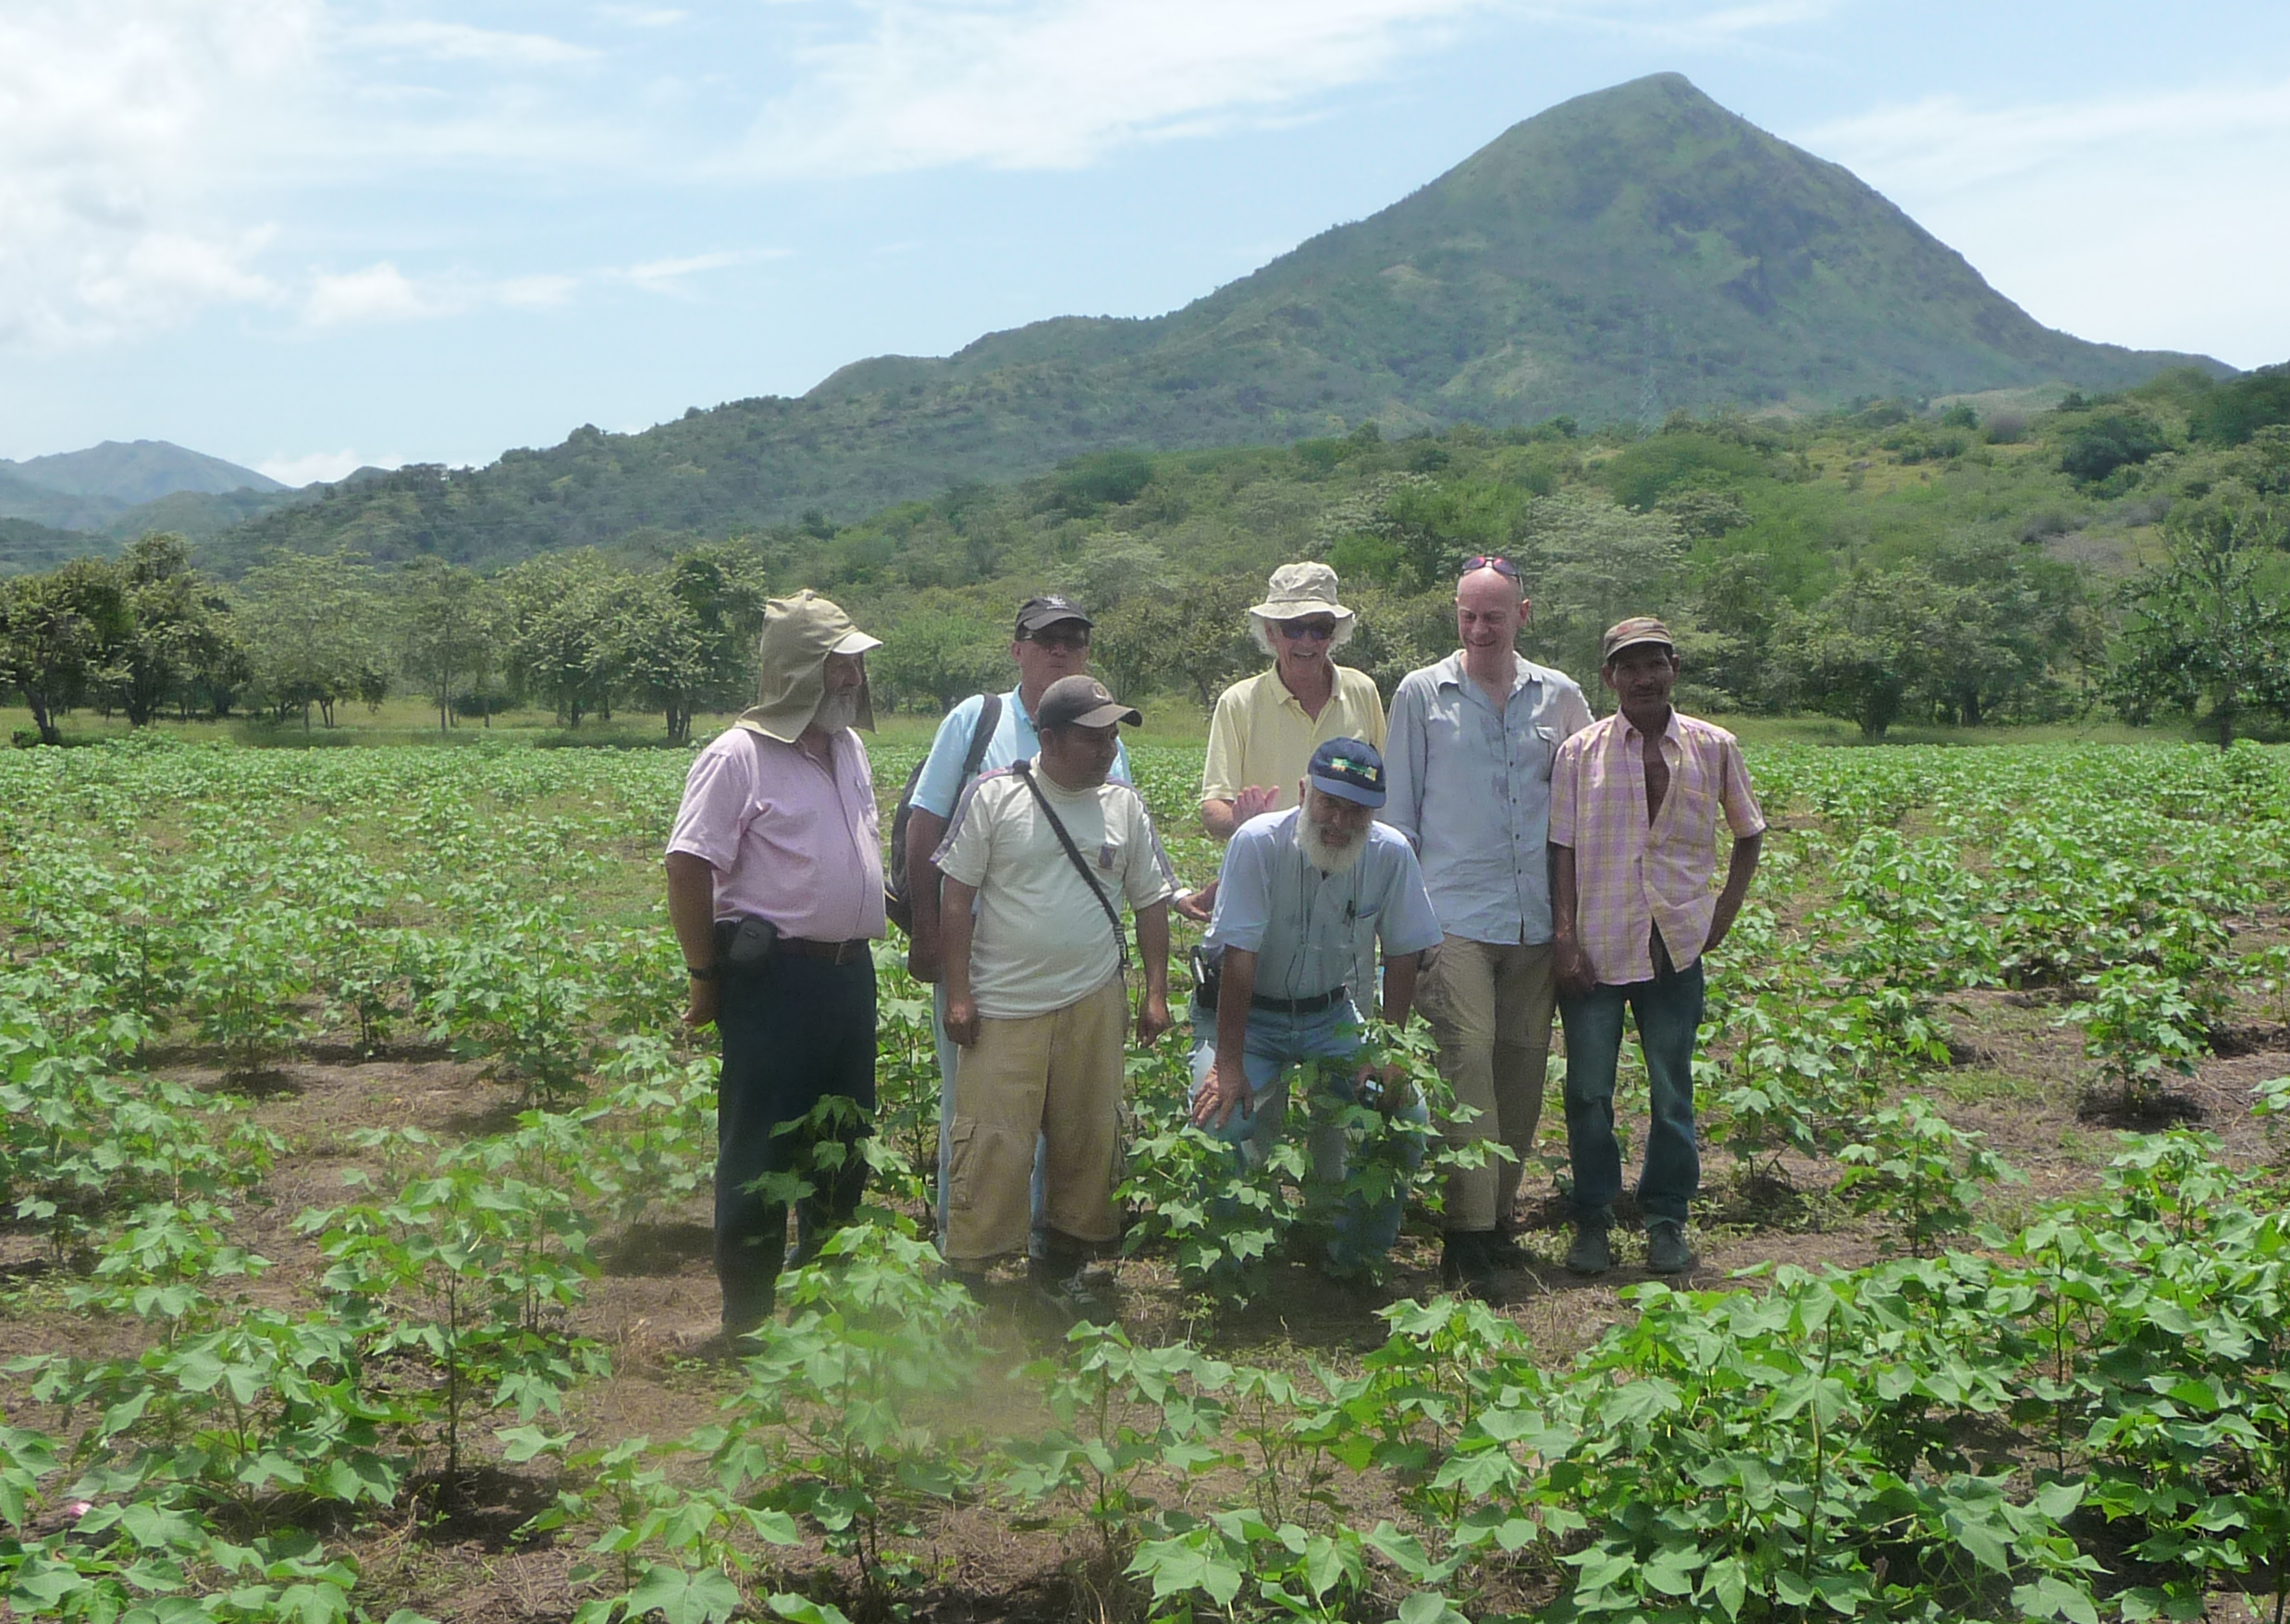 Organic cotton field 2½ month after seeding, Natagaima, Tolima, Colombia 2015